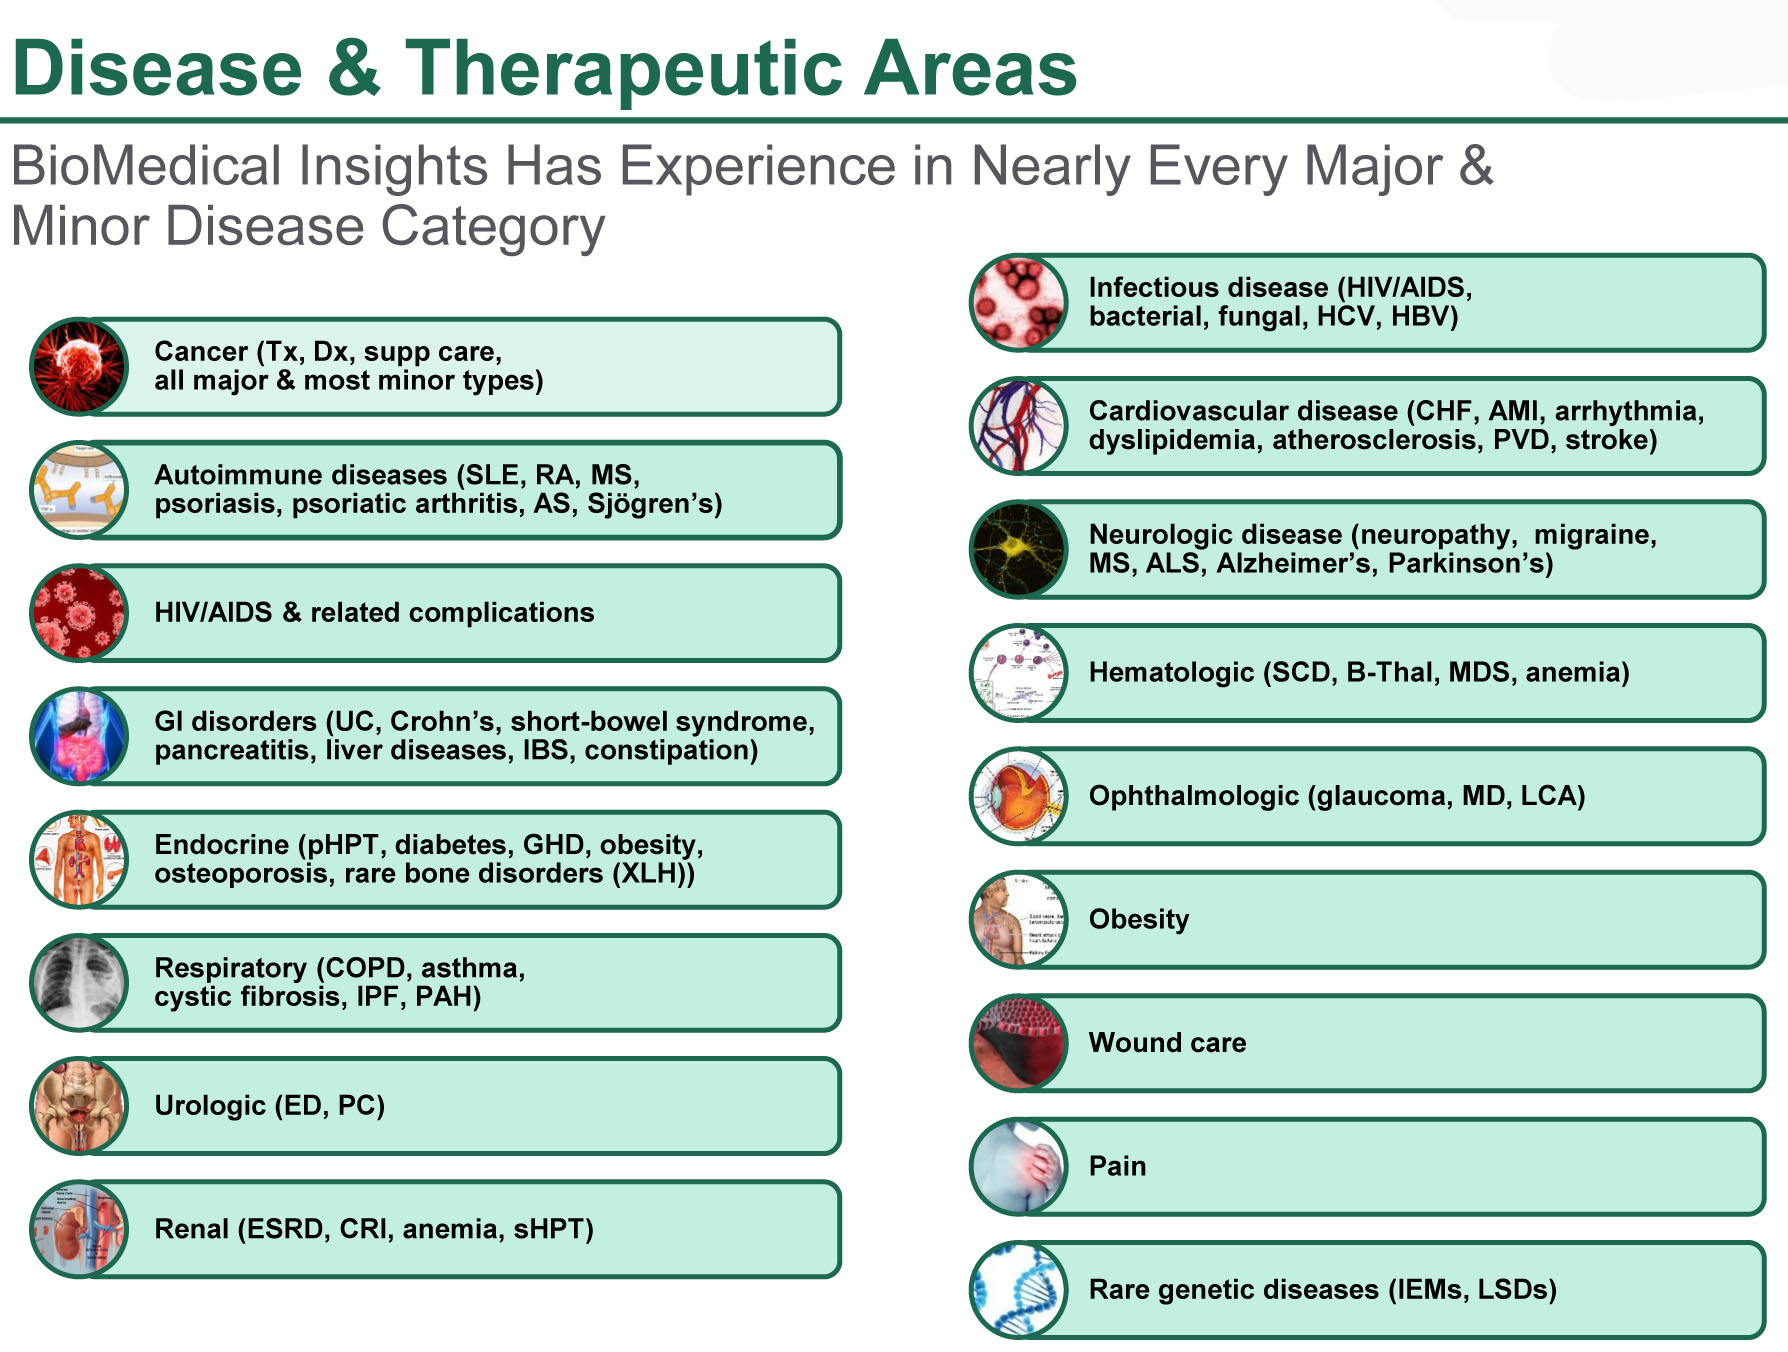 Disease & Therapeutic Areas